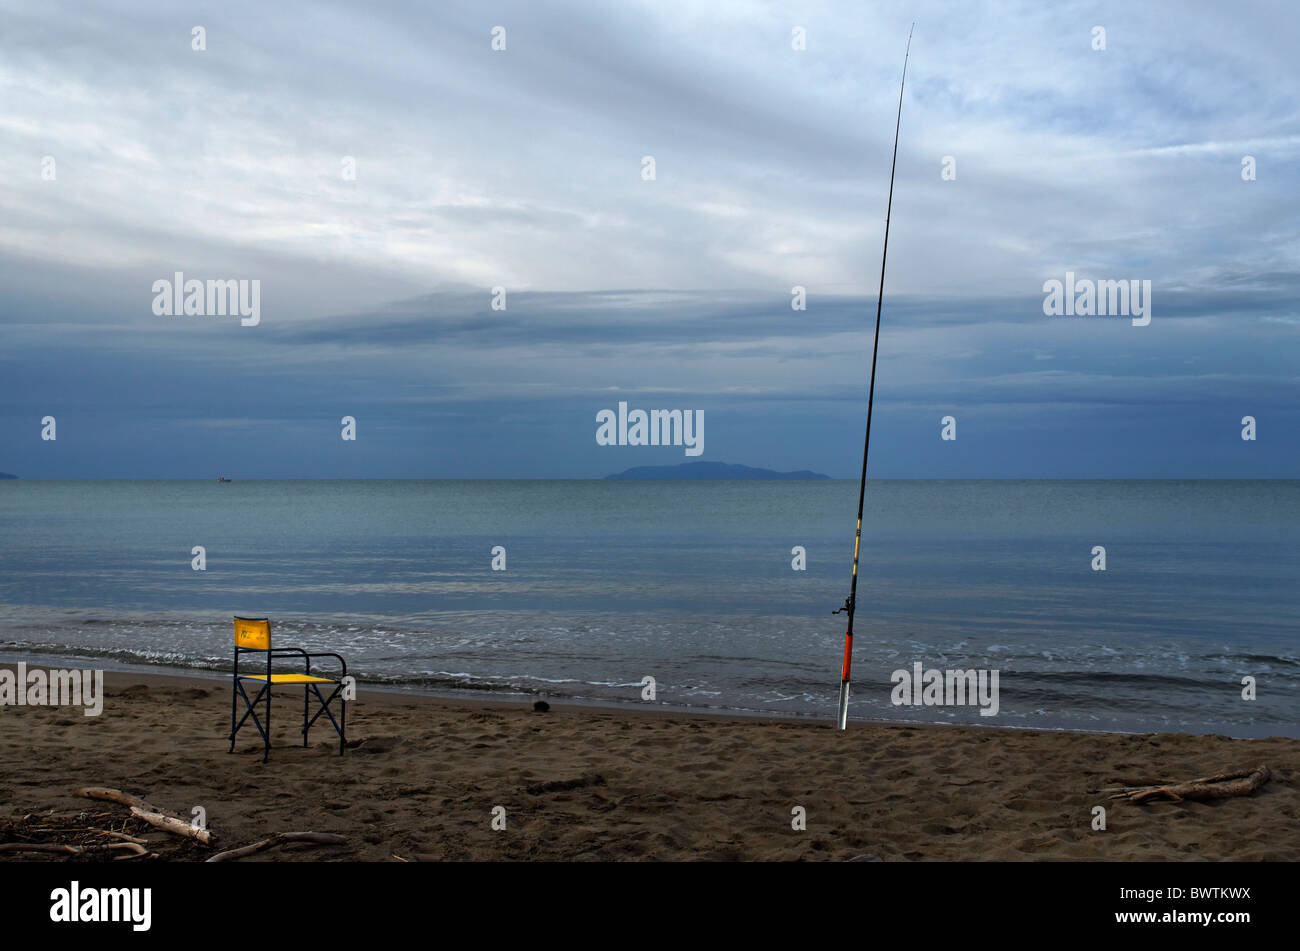 Yellow chair and fishing rod on the beach of Parco Naturale della Maremma, Symbolic picture,Tuscany, Italy - Stock Image